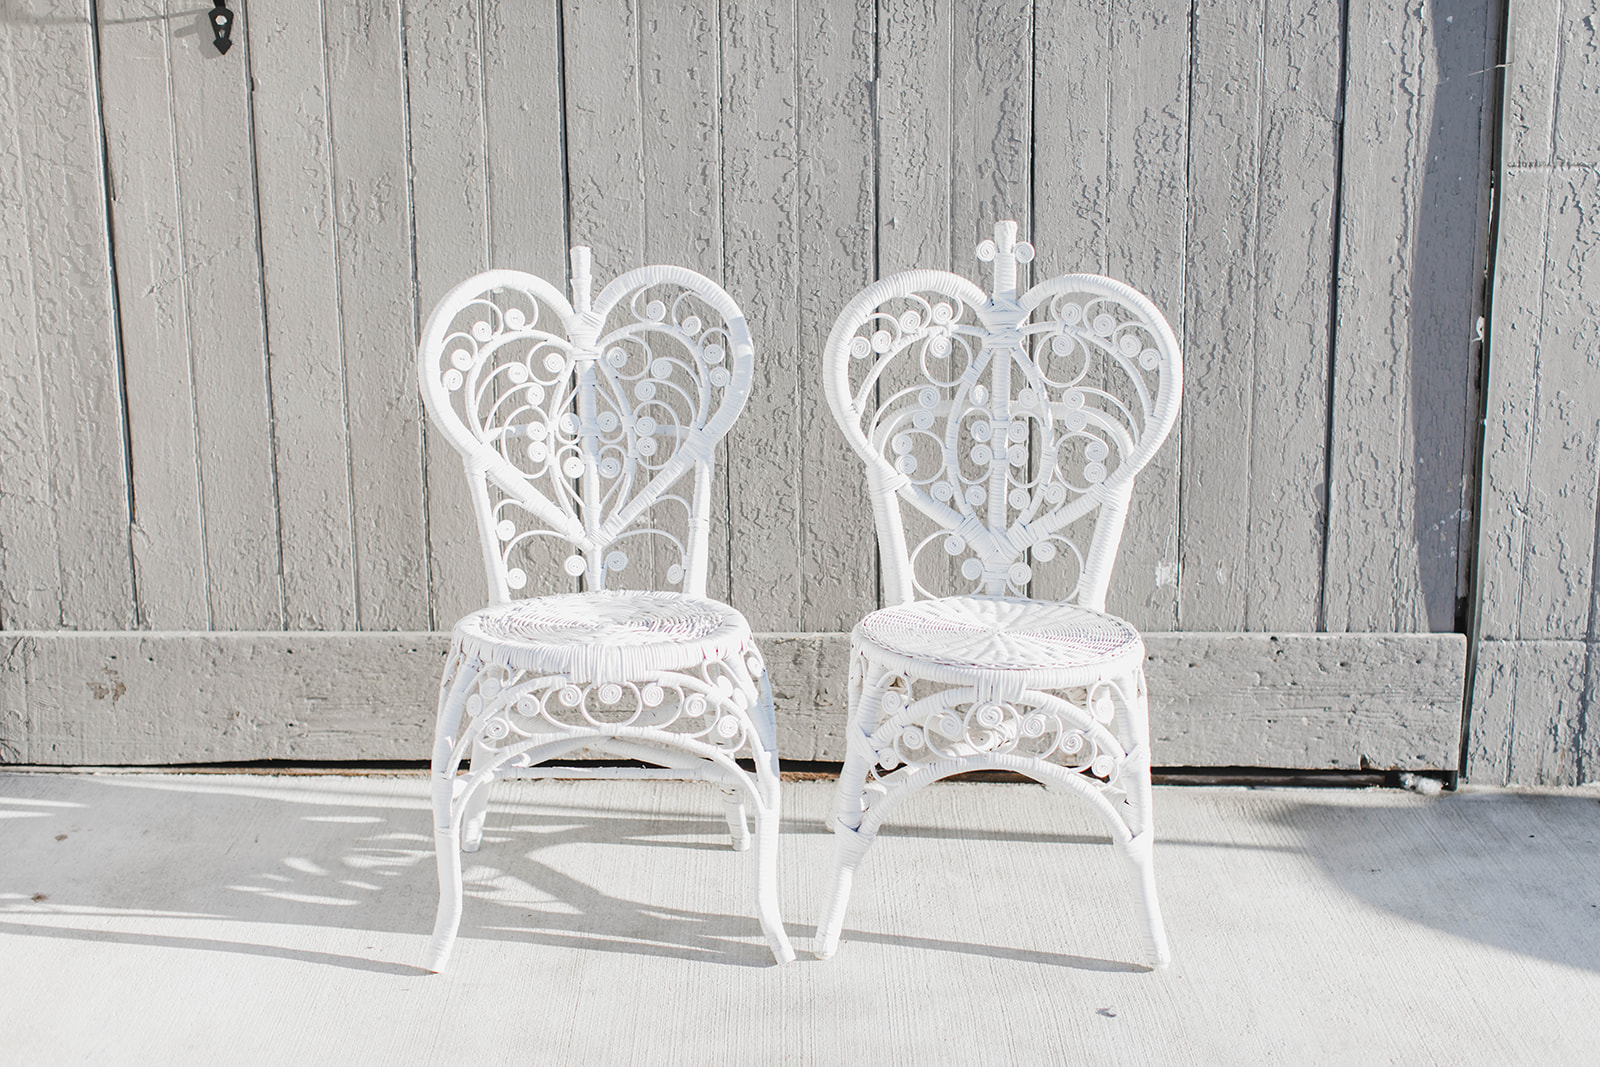 Image of Ava Wicker Chairs